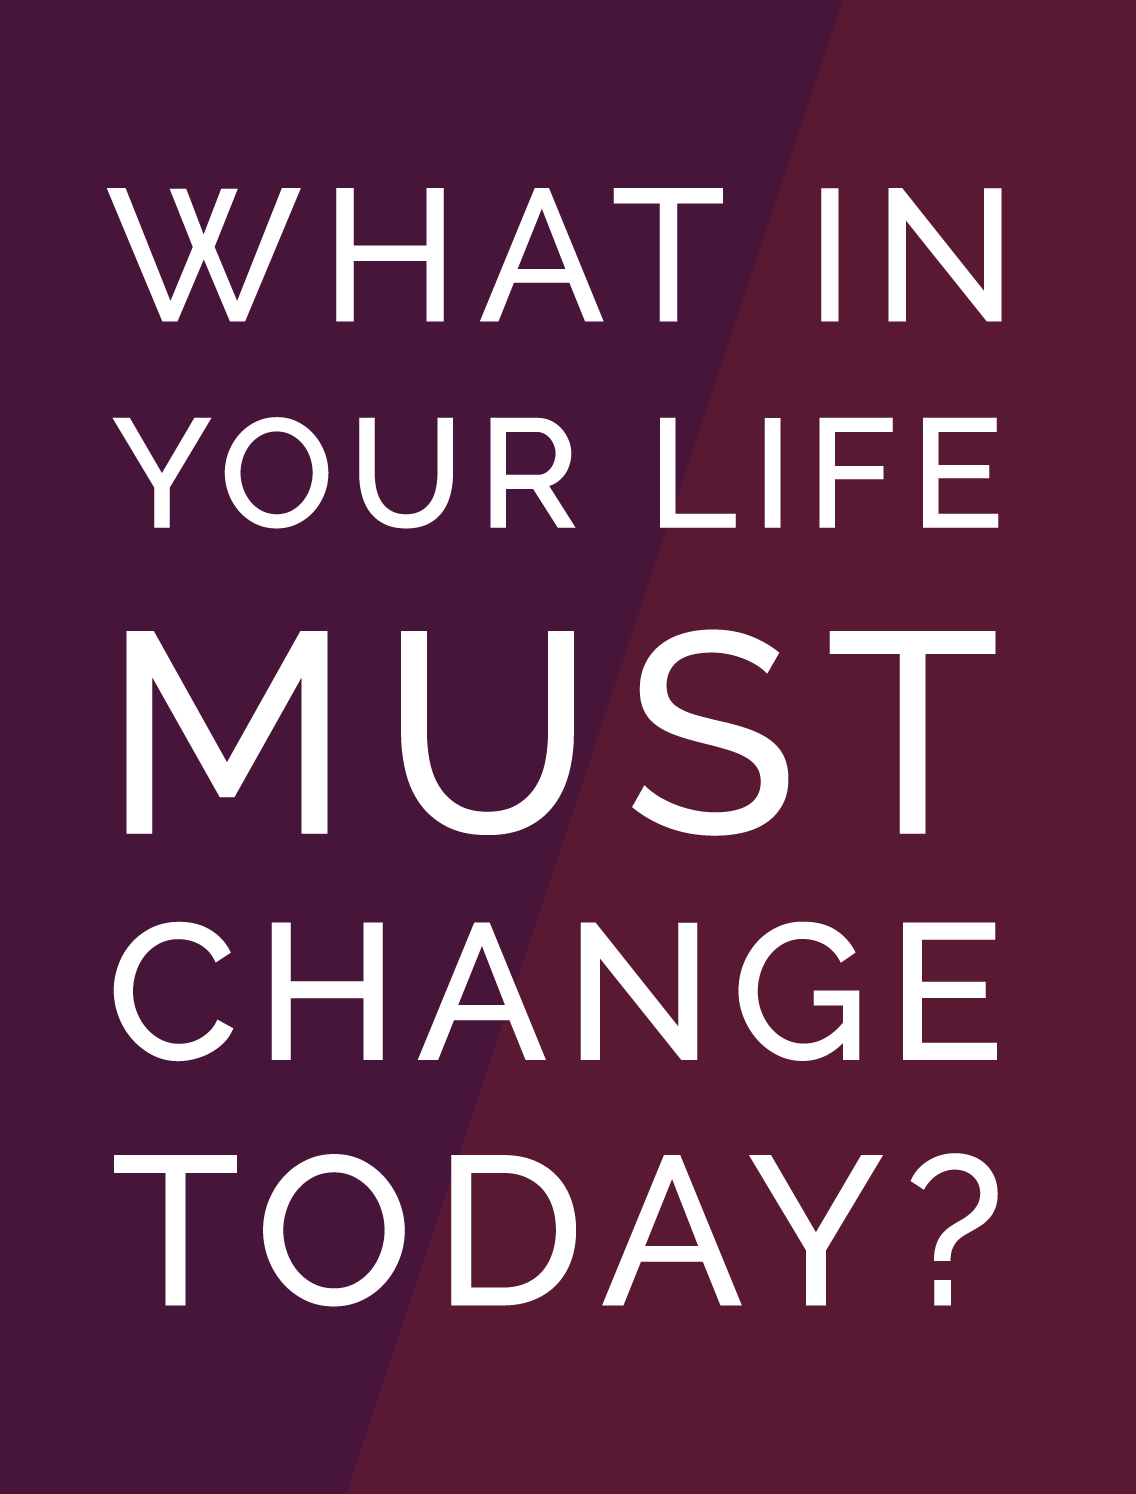 Emily Anne Page - Growth Catalyst - What In Your Life Must Change Now?